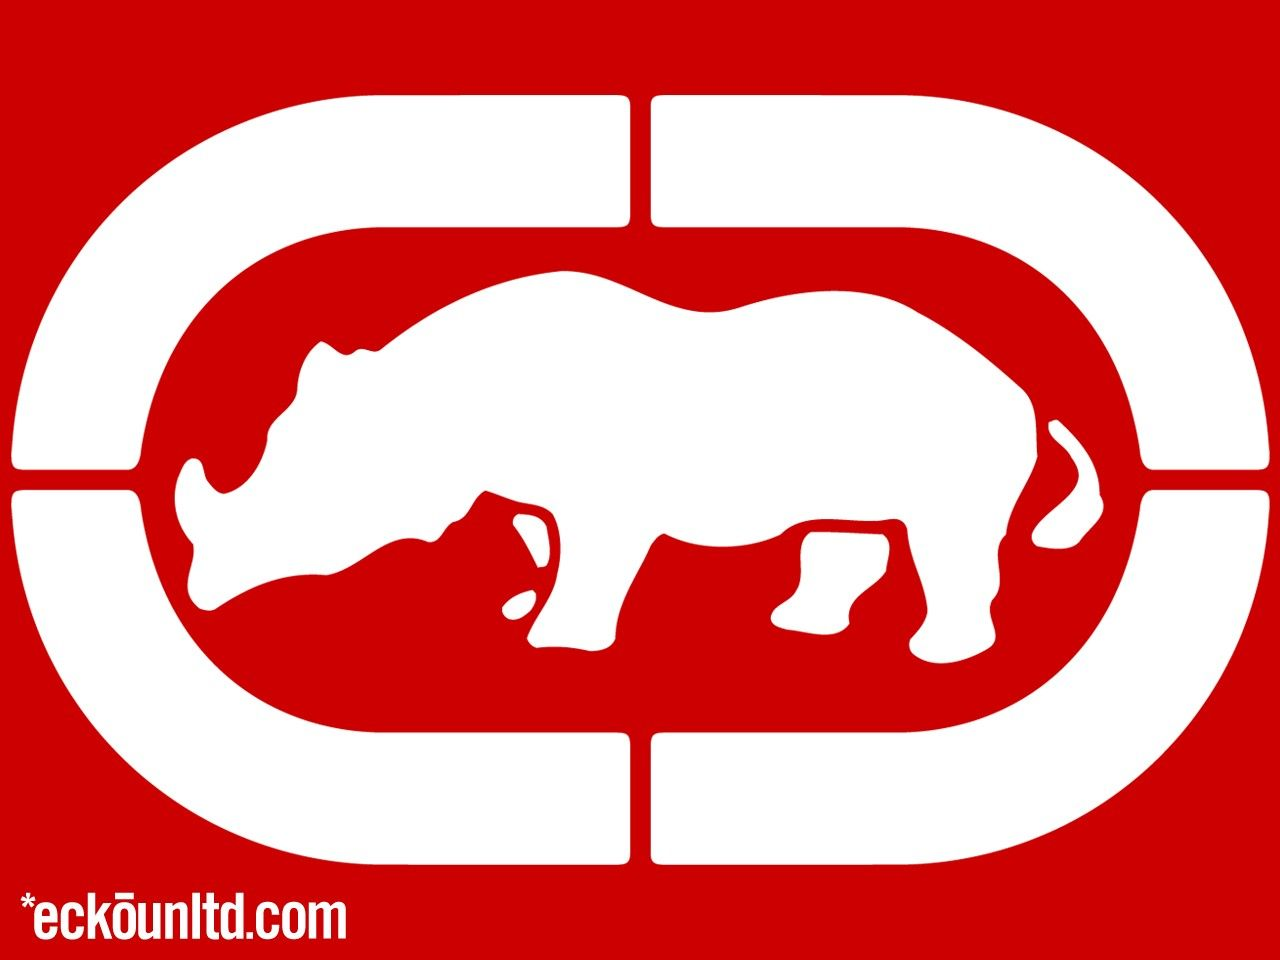 Ecko Unlimited Apparel Uses A Rhino Which Is Endangered In Their